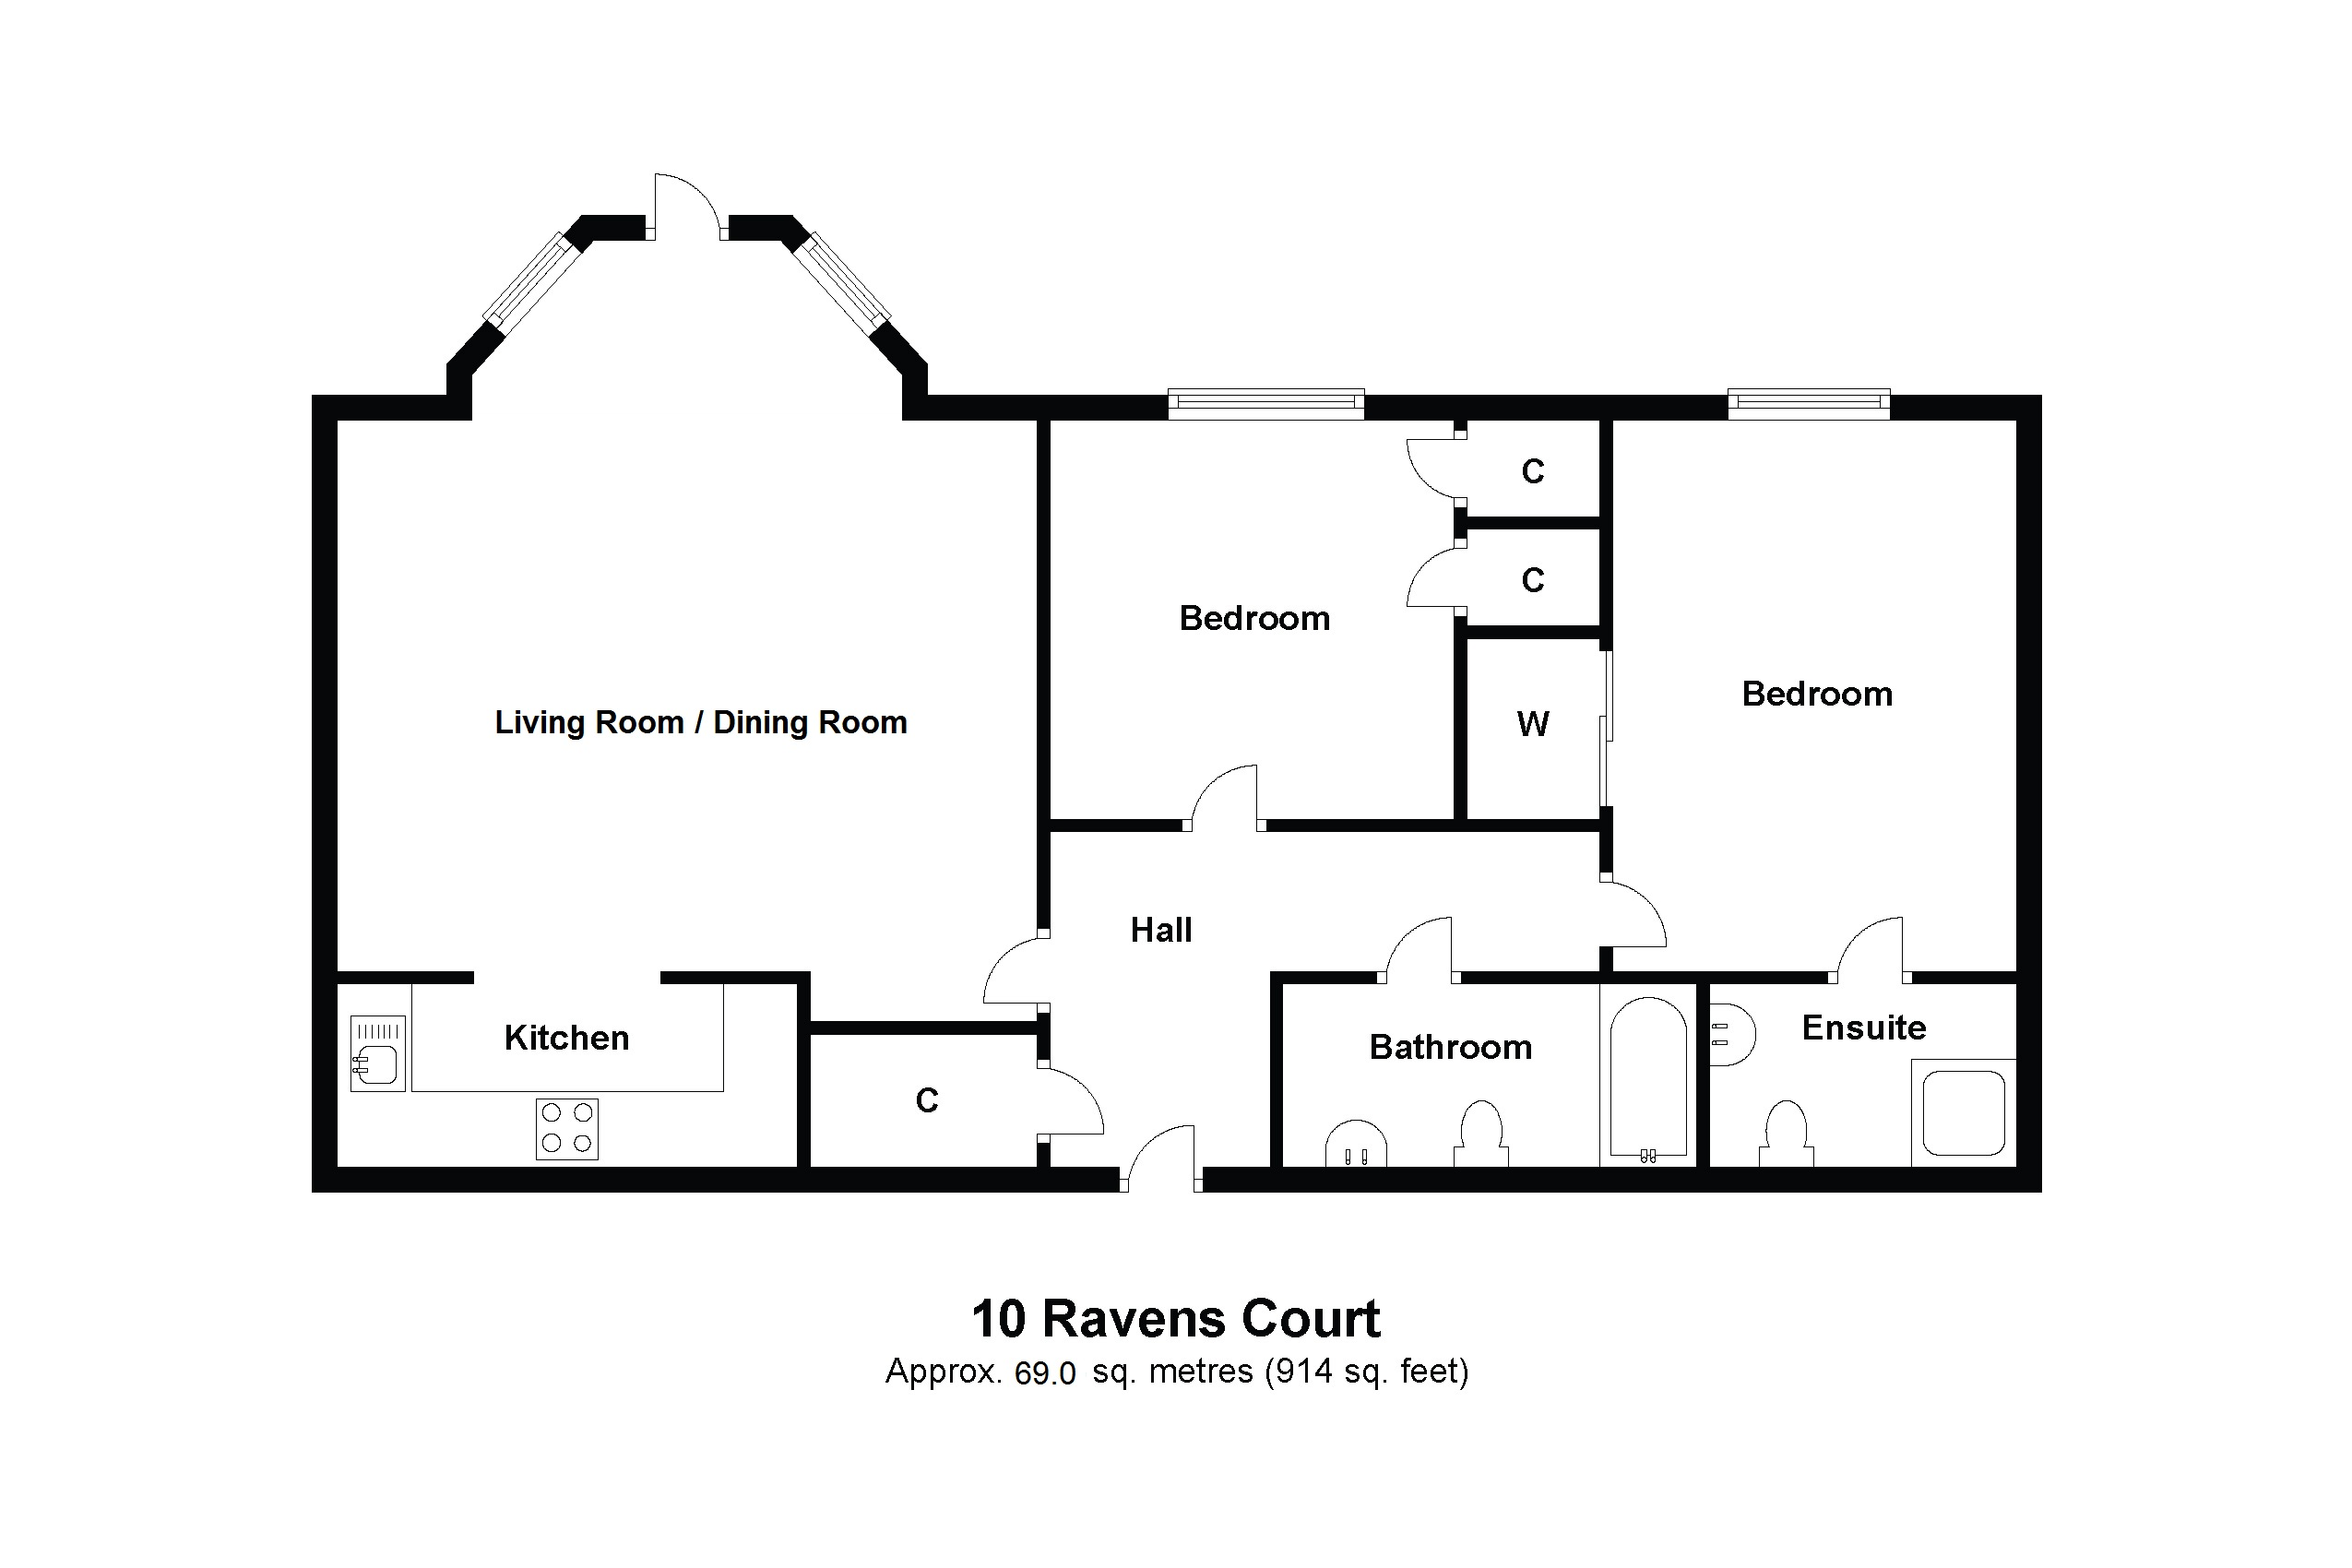 10 Ravens Court Floorplan